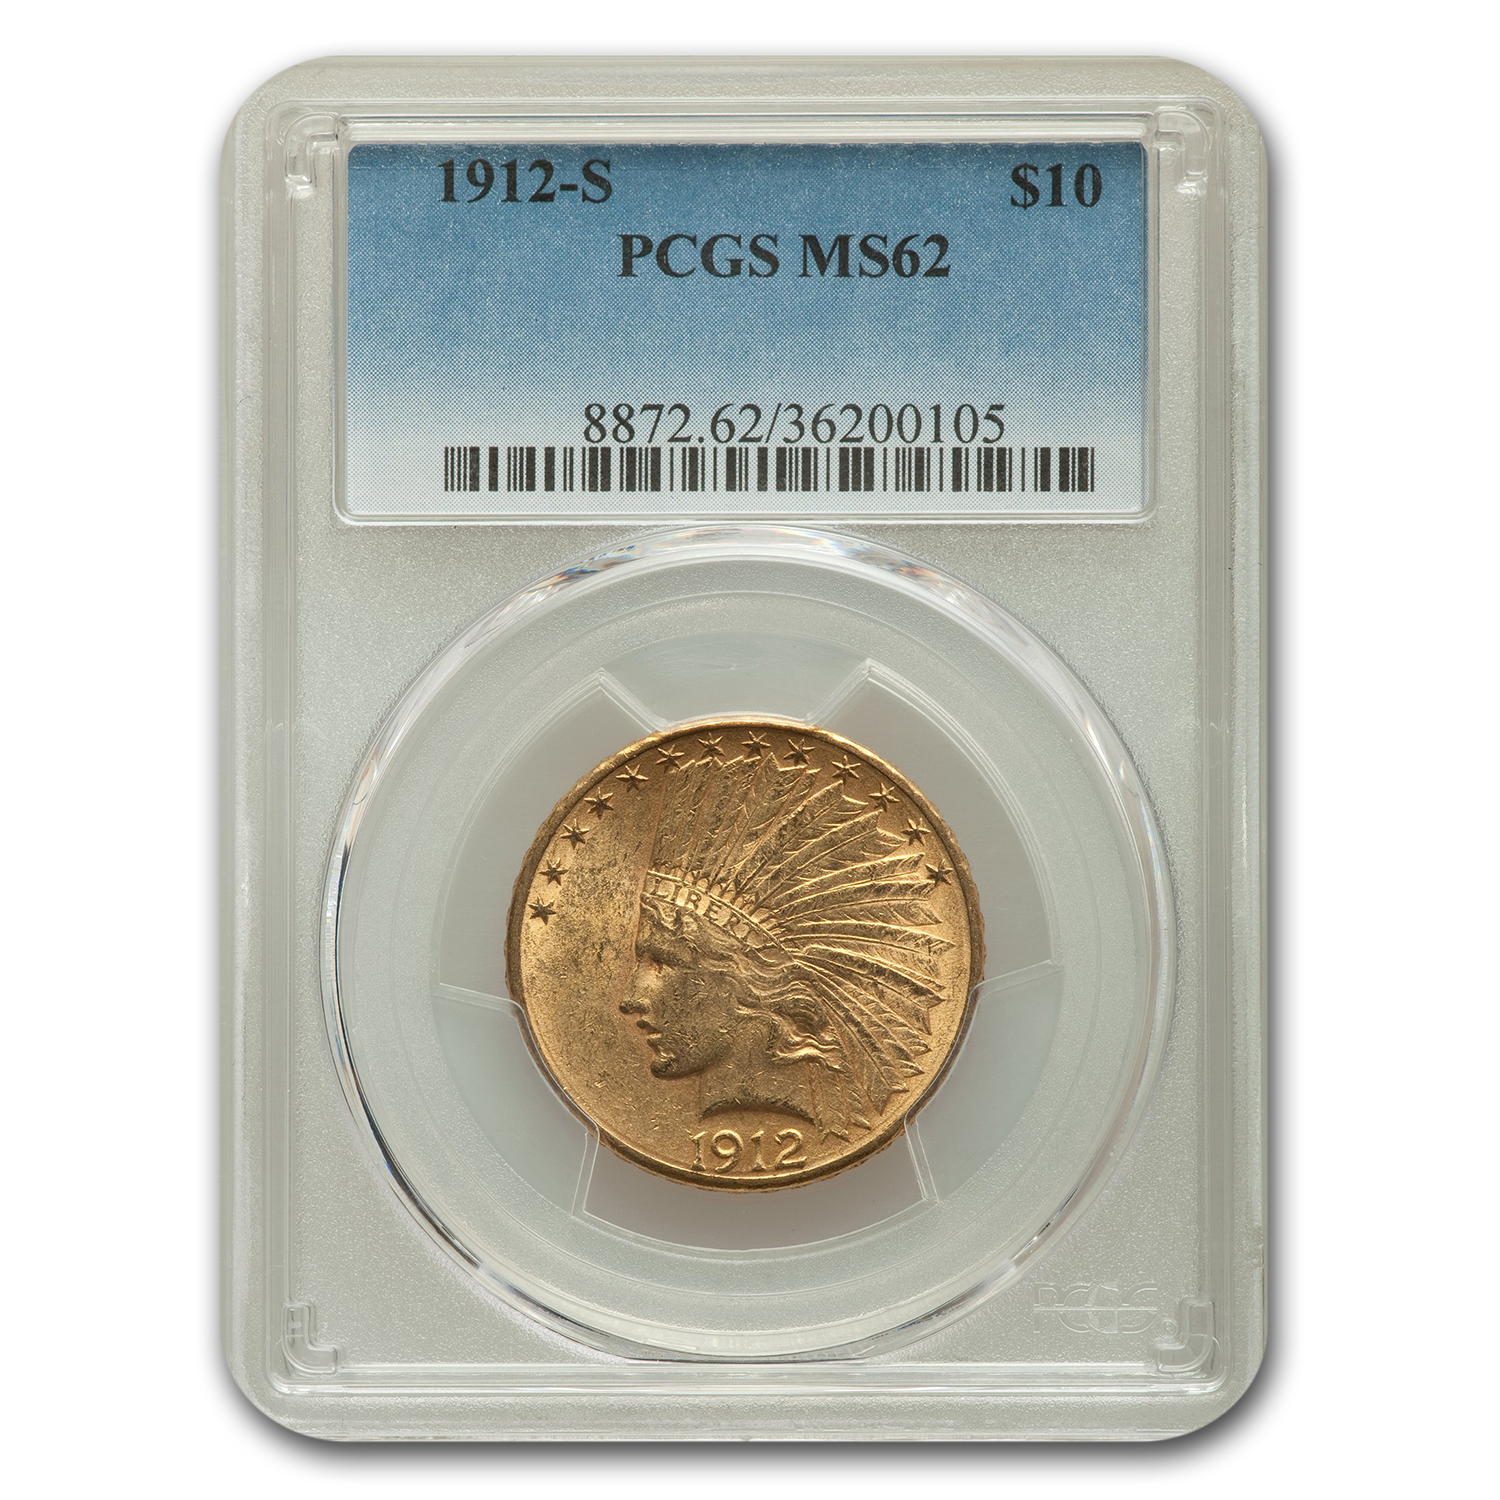 1912-S $10 Indian Gold Eagle MS-62 PCGS